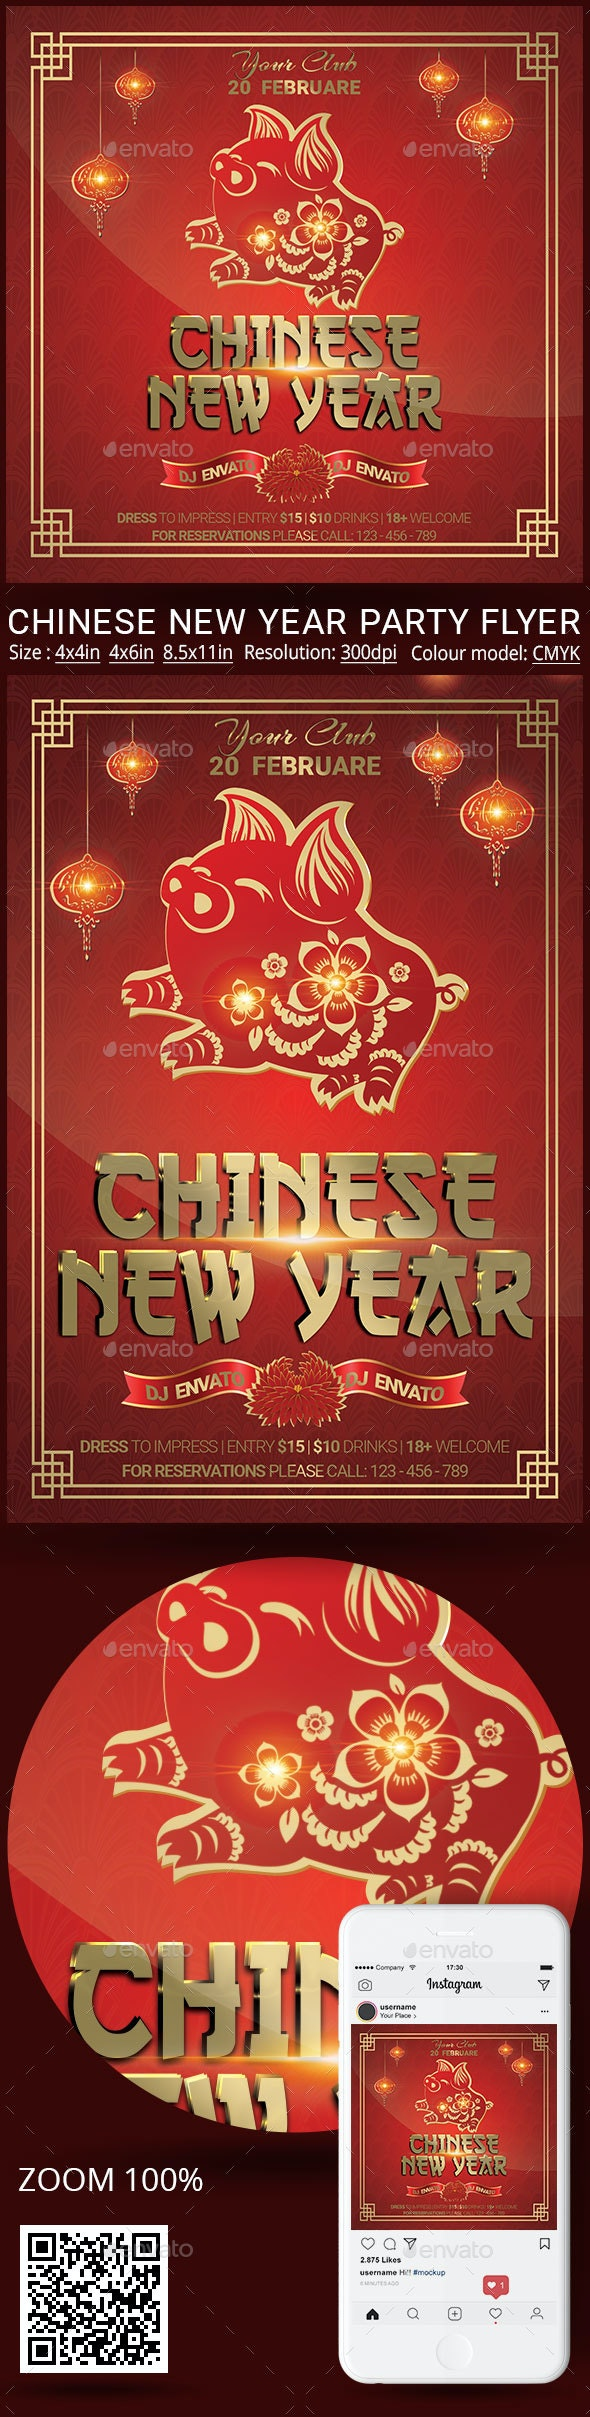 Chinese - Holidays Events